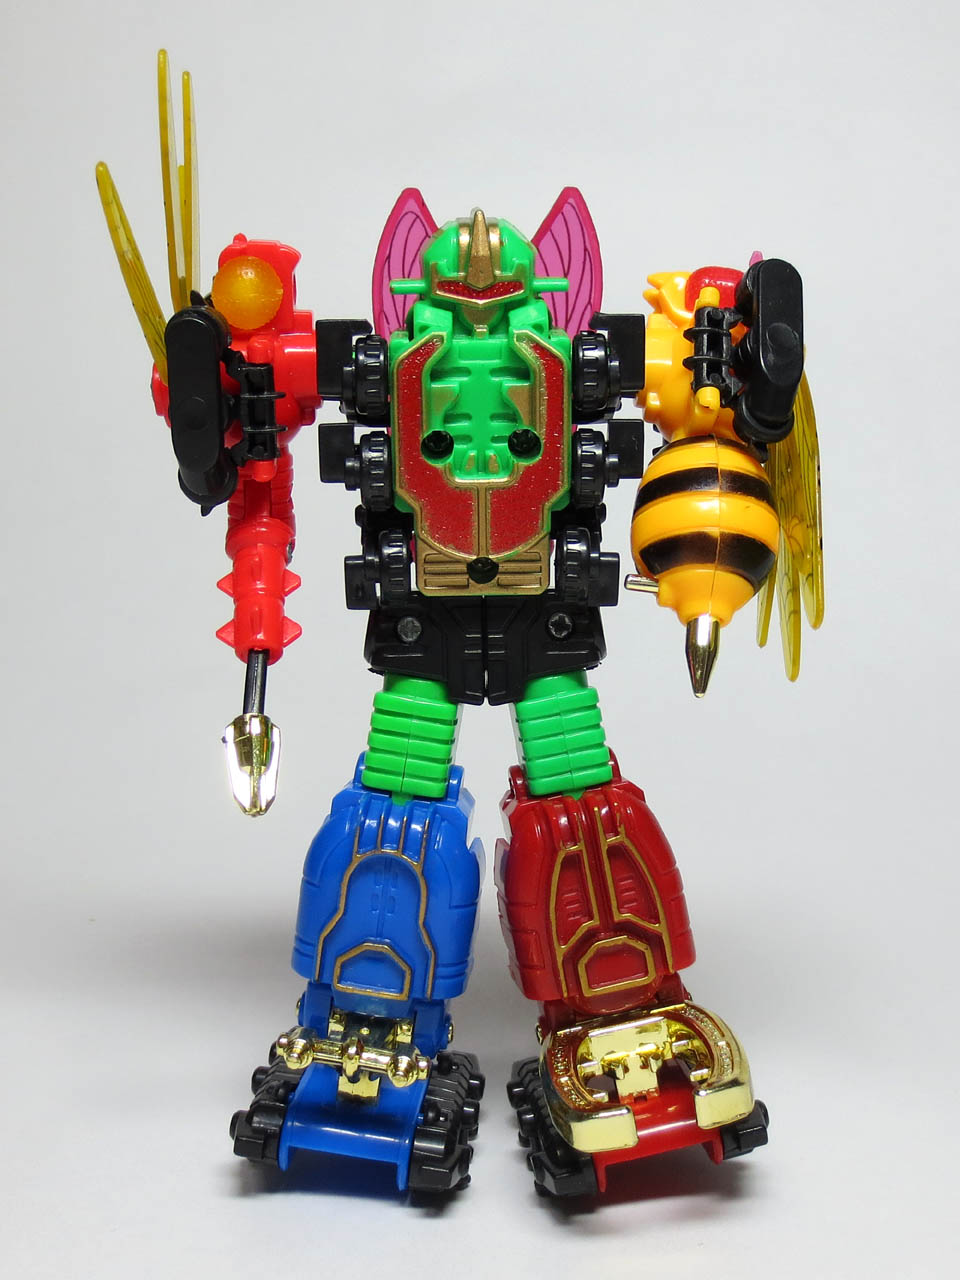 Insect_Combined_robot_32.jpg